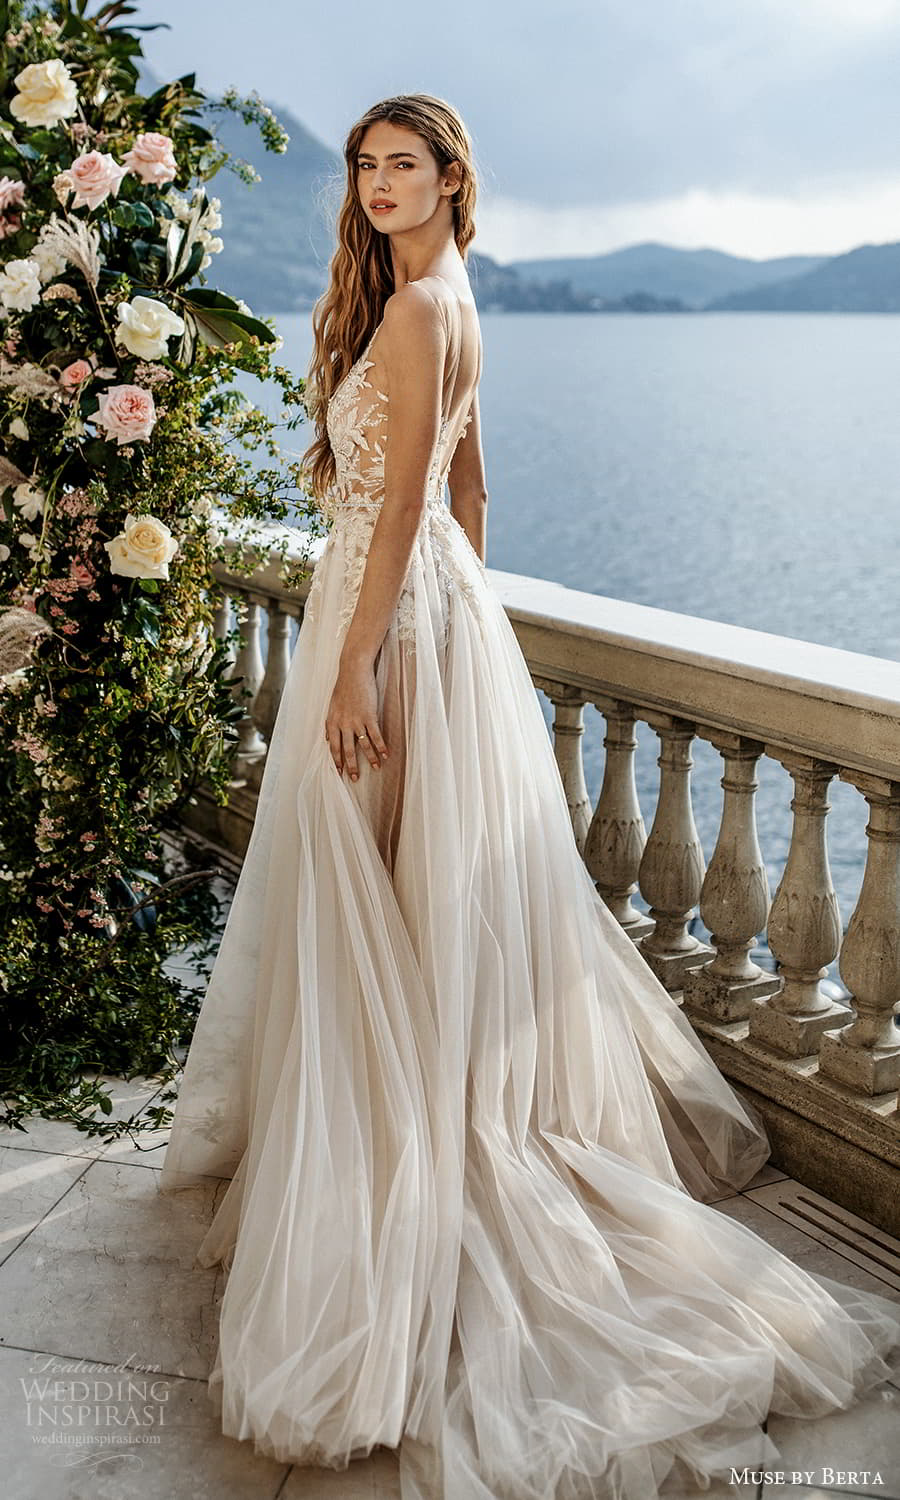 muse by berta spring 2022 bridal sleeveless straps plunging v neckline embellished bodice a line ball gown wedding dress chapel train (10) bv